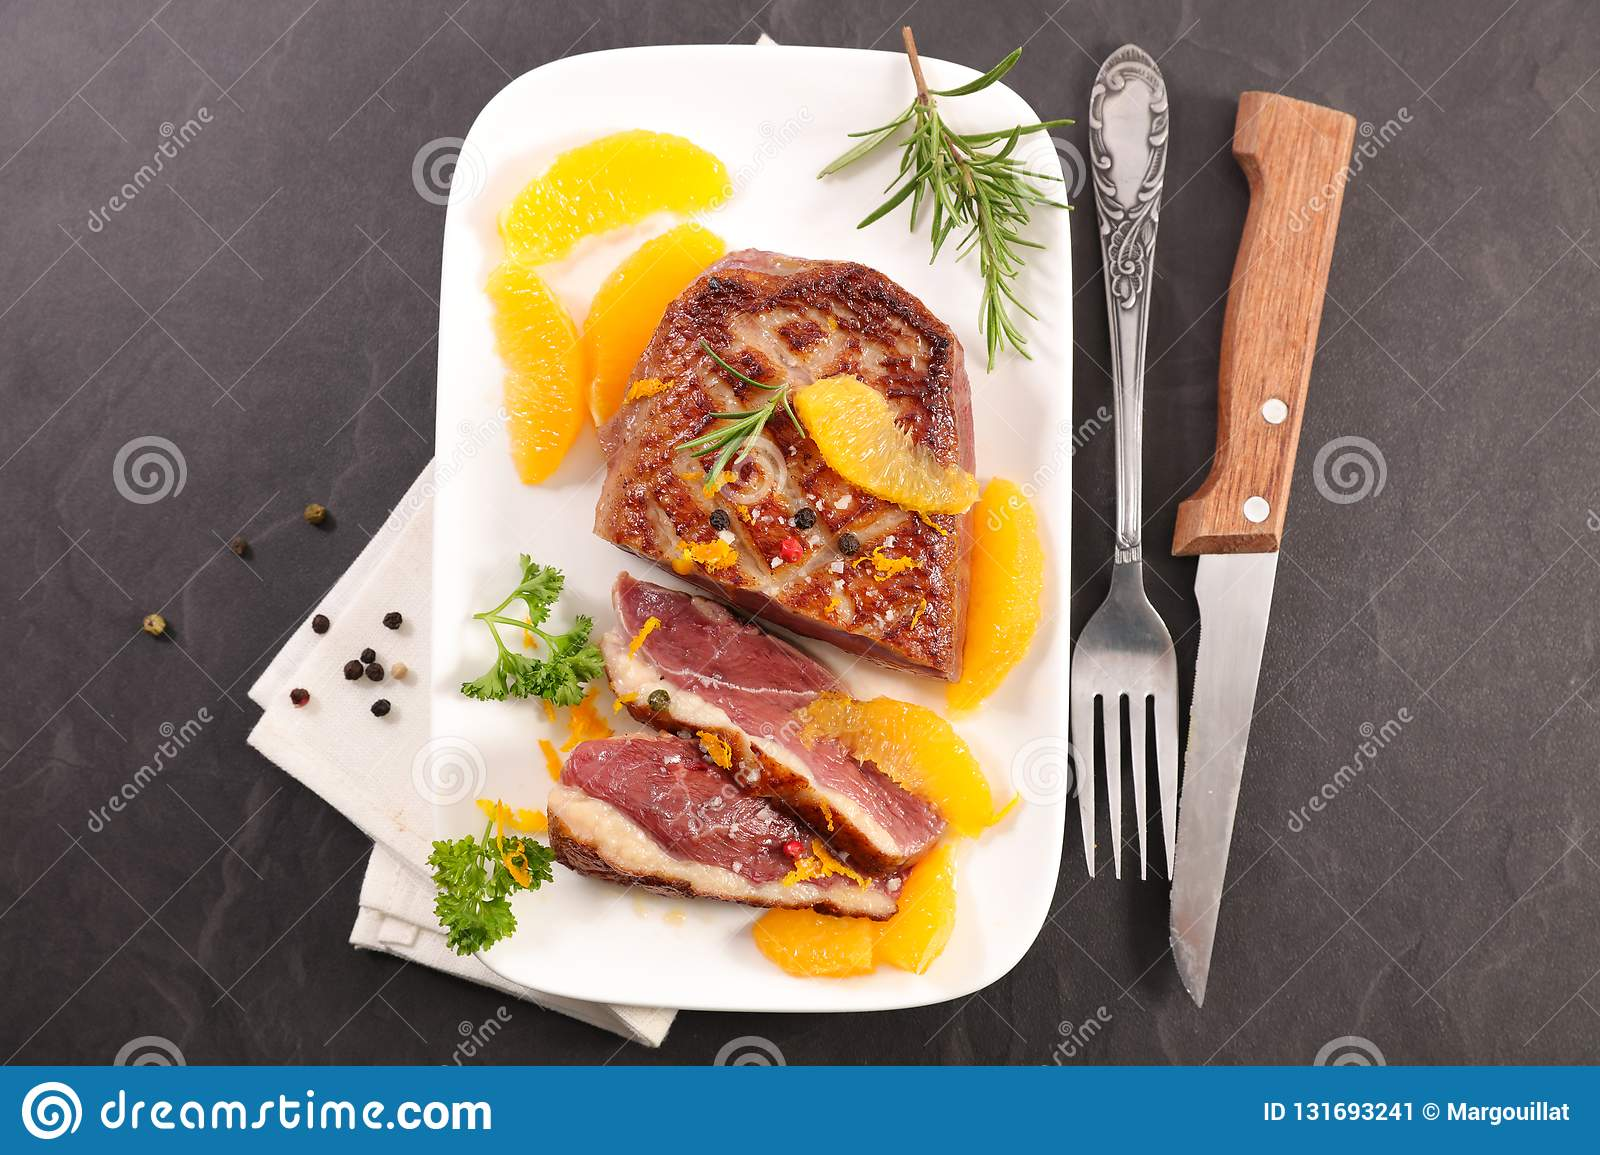 Roasted duck and oranges